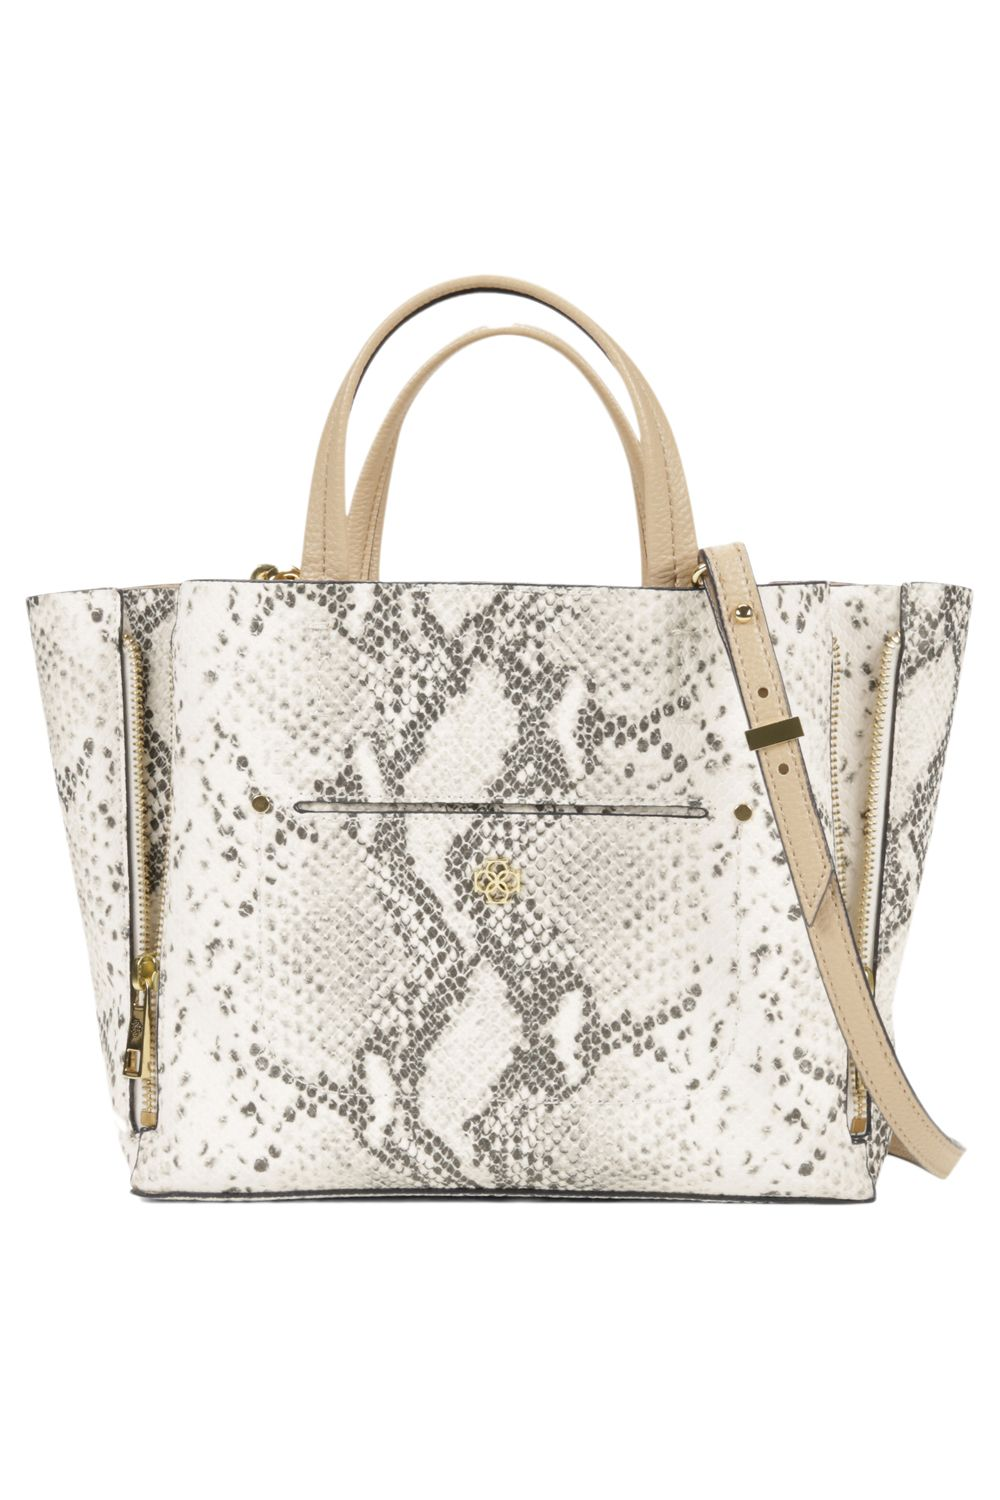 Mini Exotic Embossed Signature Tote, $118; Ann Taylor.